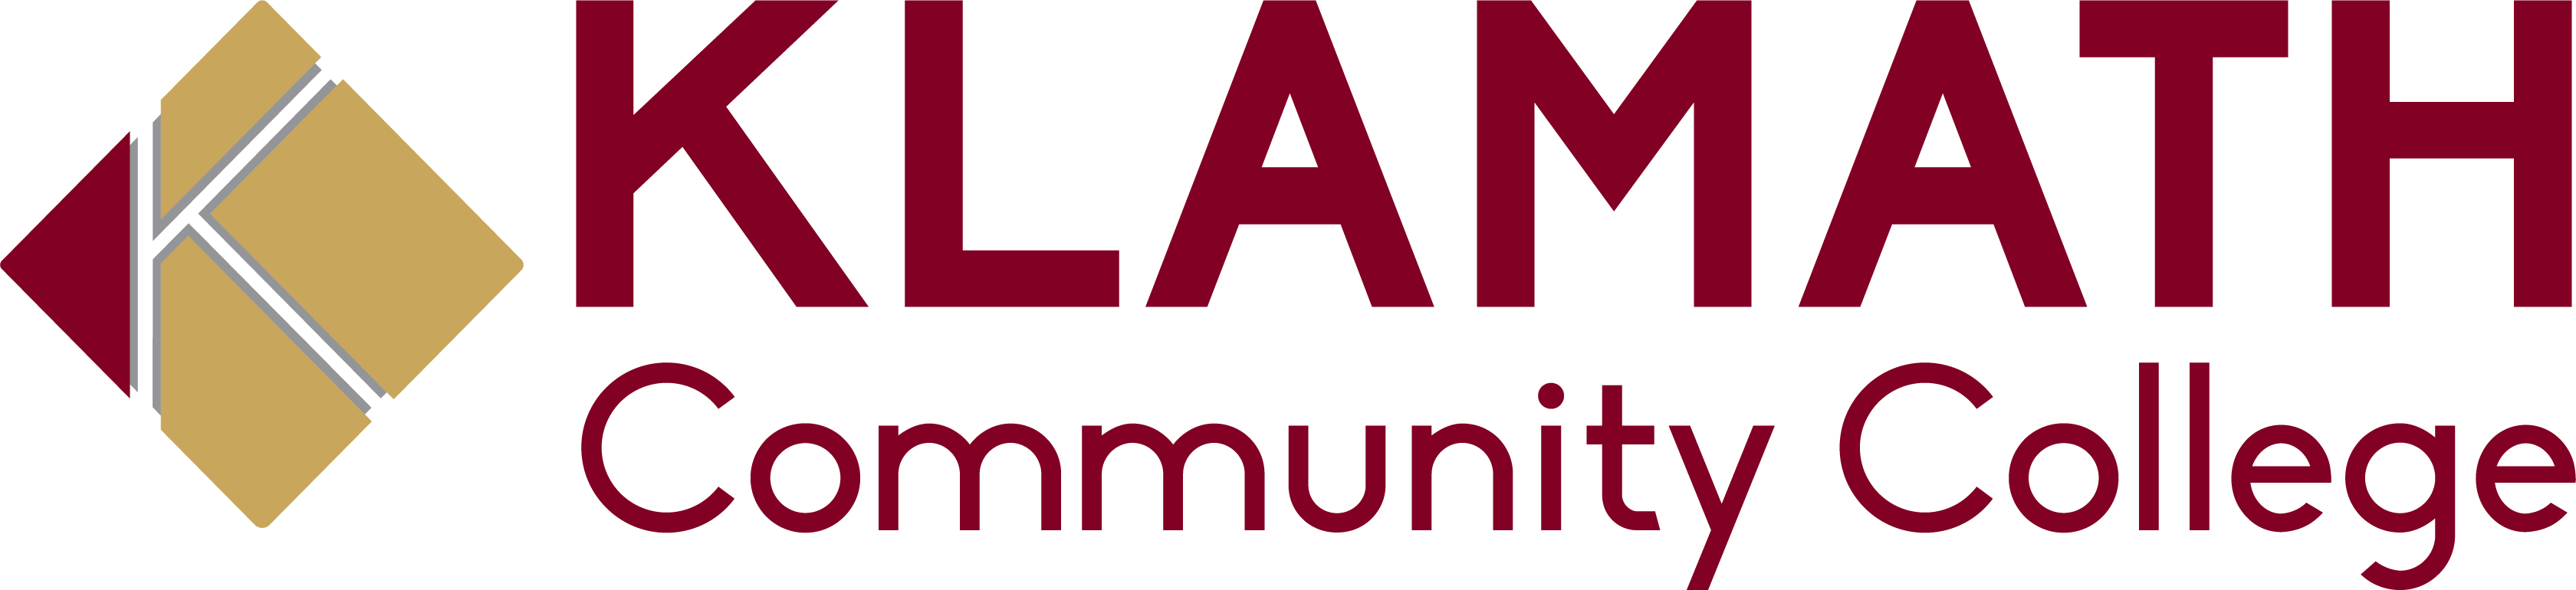 Klamath Community College Logo